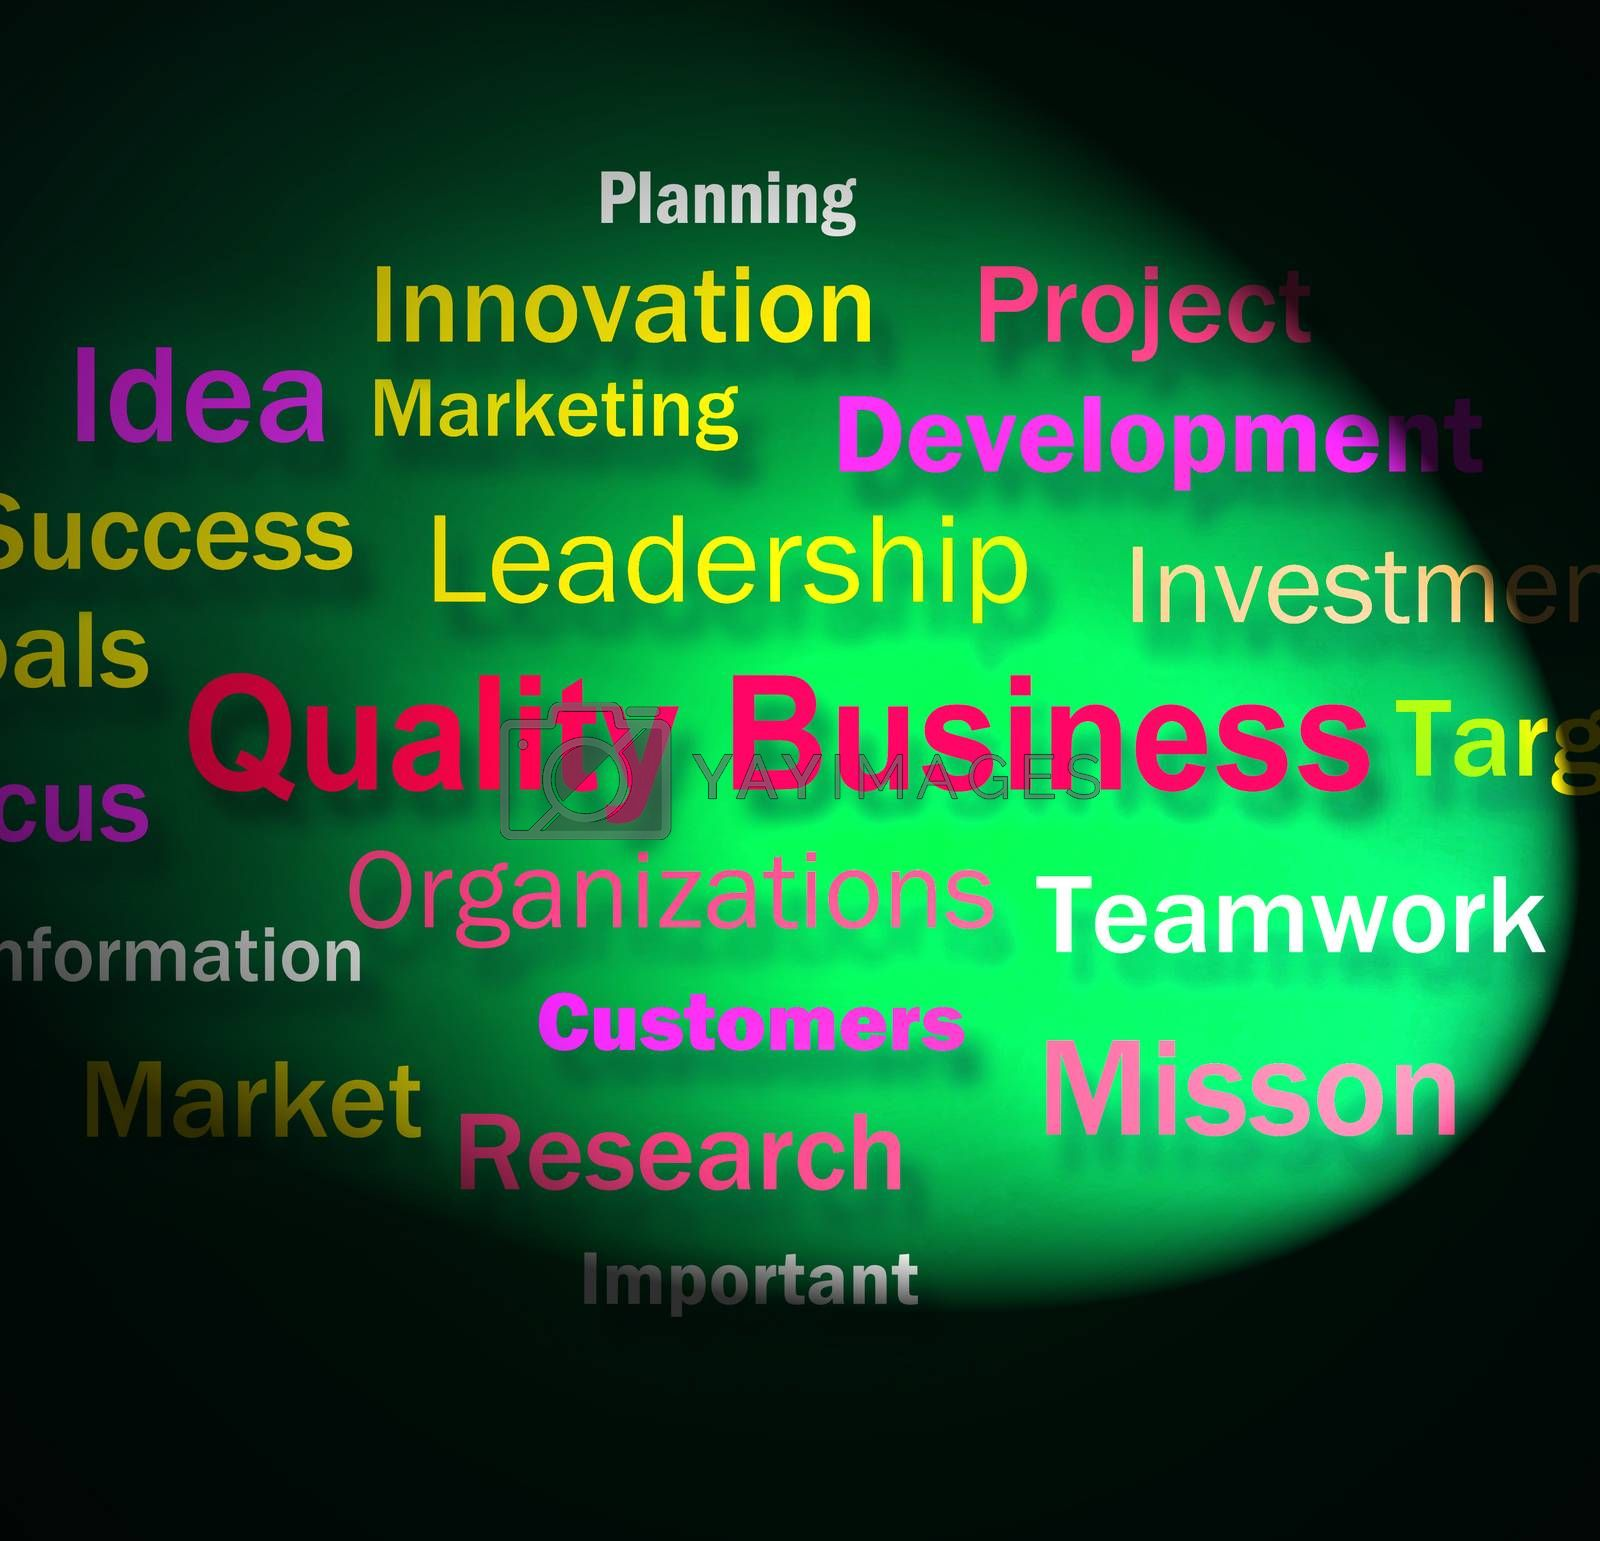 Quality Business Words Means Excellent Company Reputation by stuartmiles